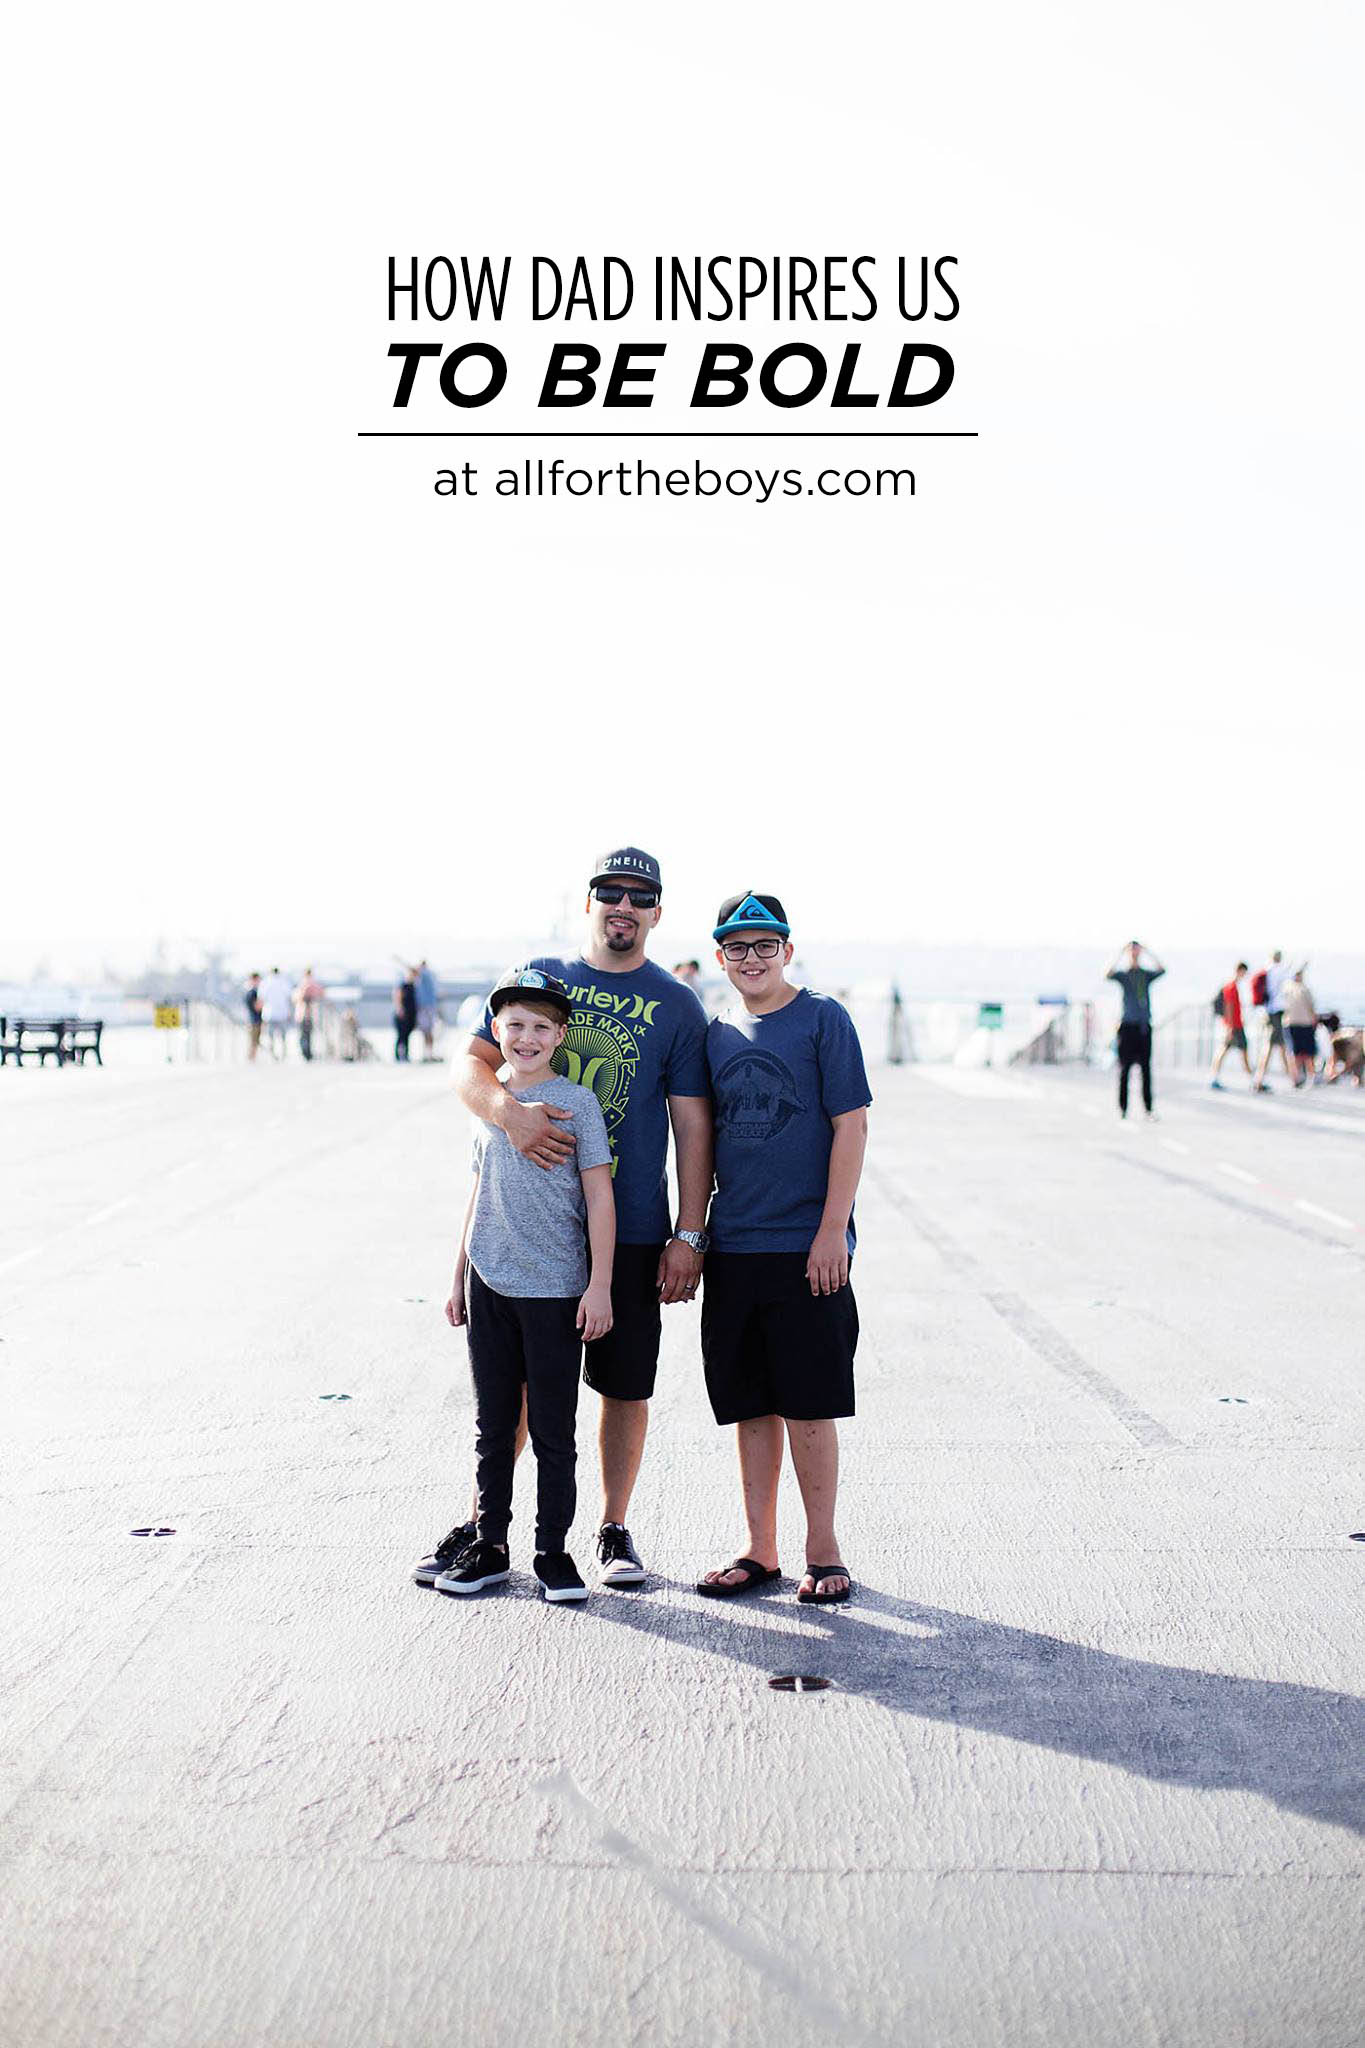 How Dad inspires us to be bold